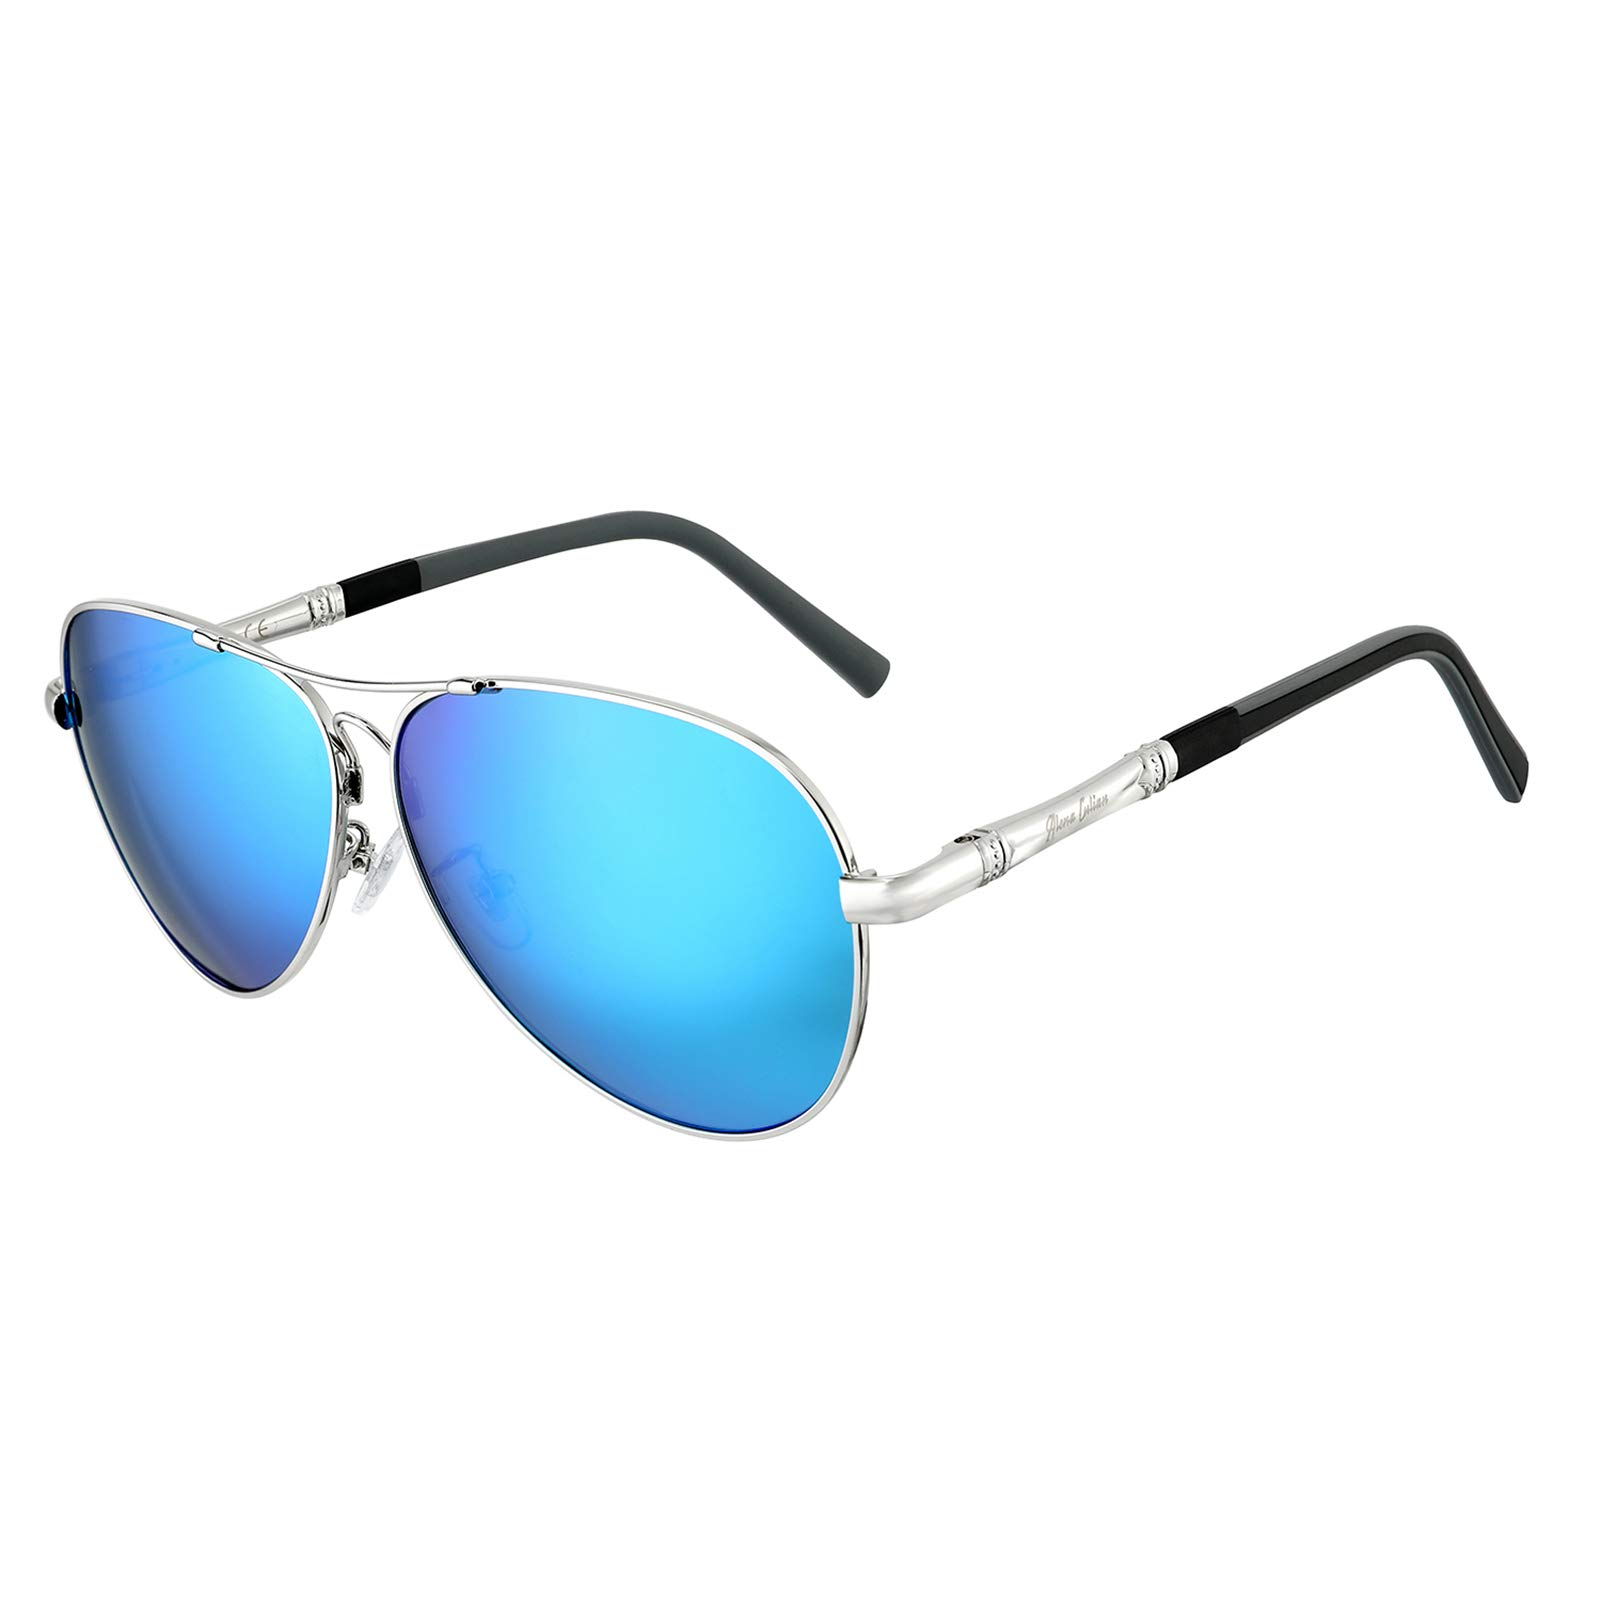 Aviator Polarized Sunglasses for Men and Women Semi-Rimless Frame Driving Mirrored Lens